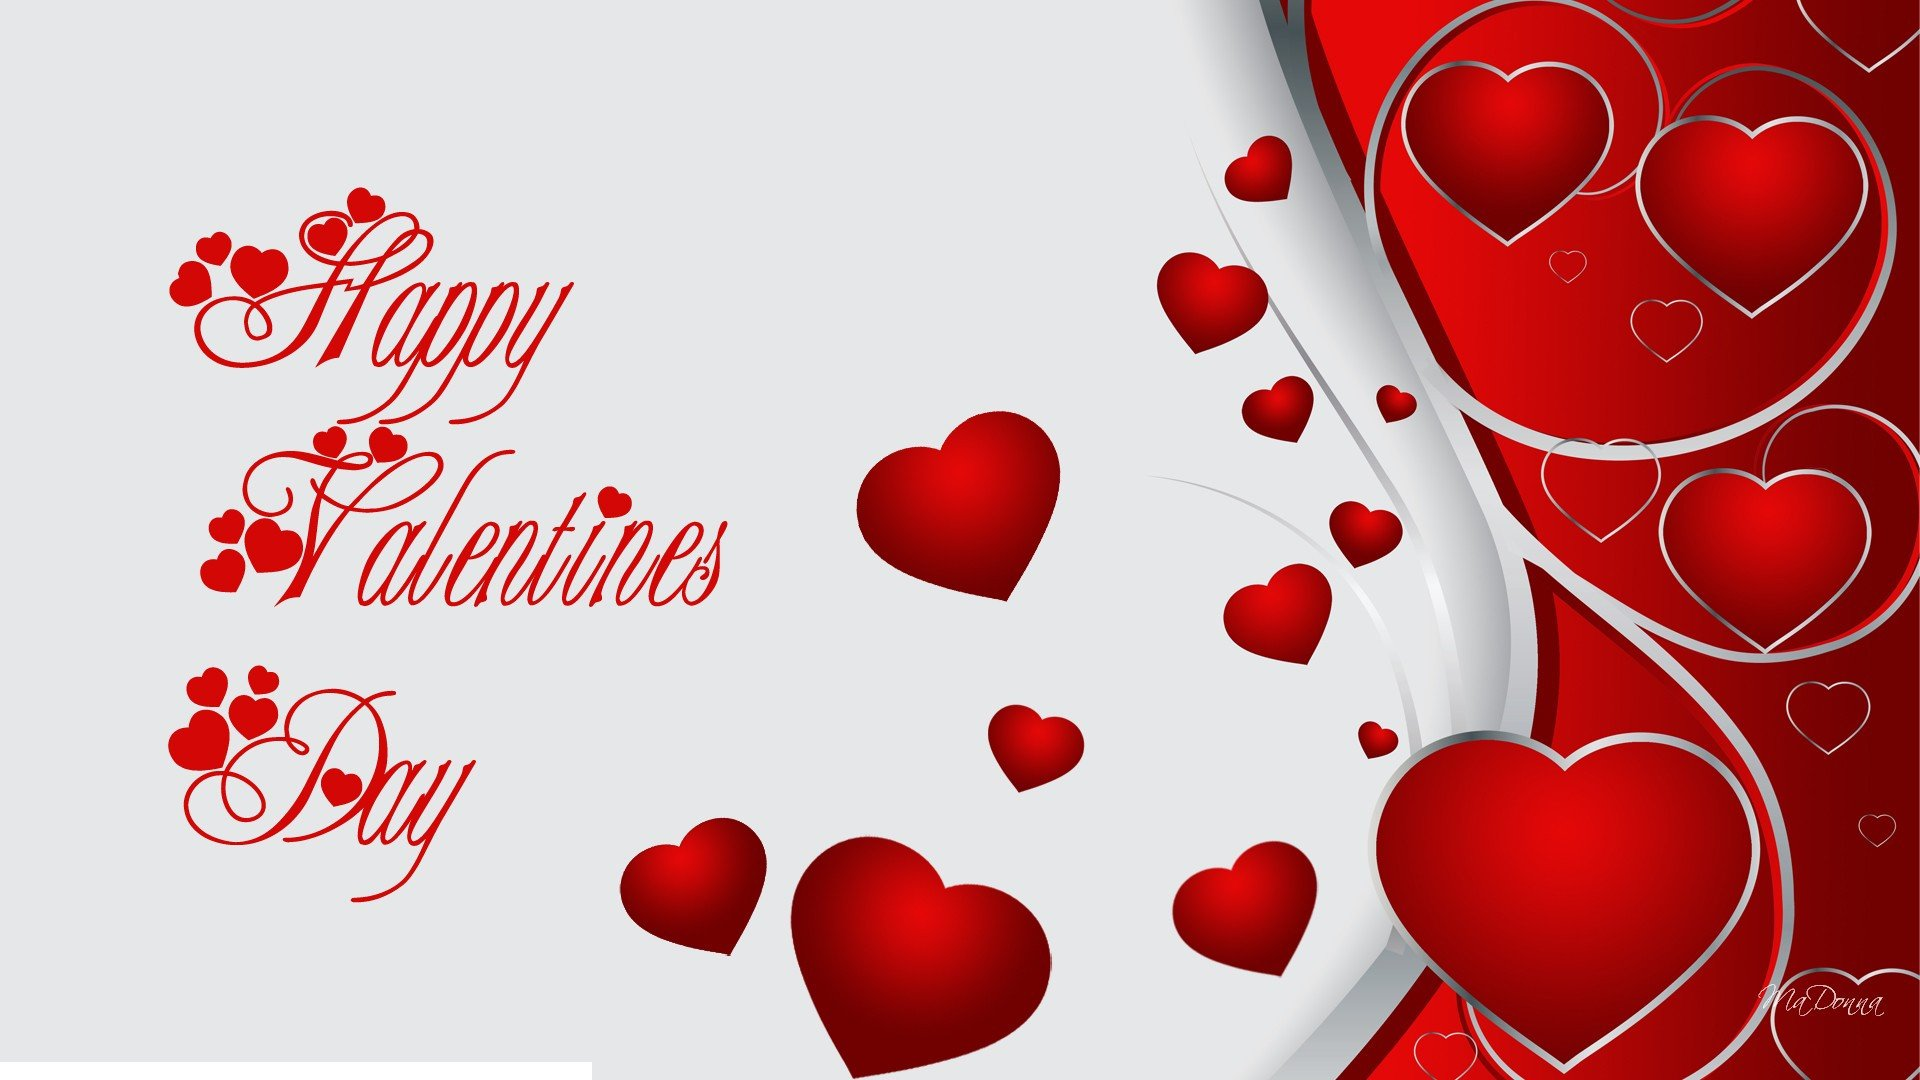 Valentine Day Wallpaper Free [10 Best] Valentine S Day Pc Wallpapers to Make the Mood